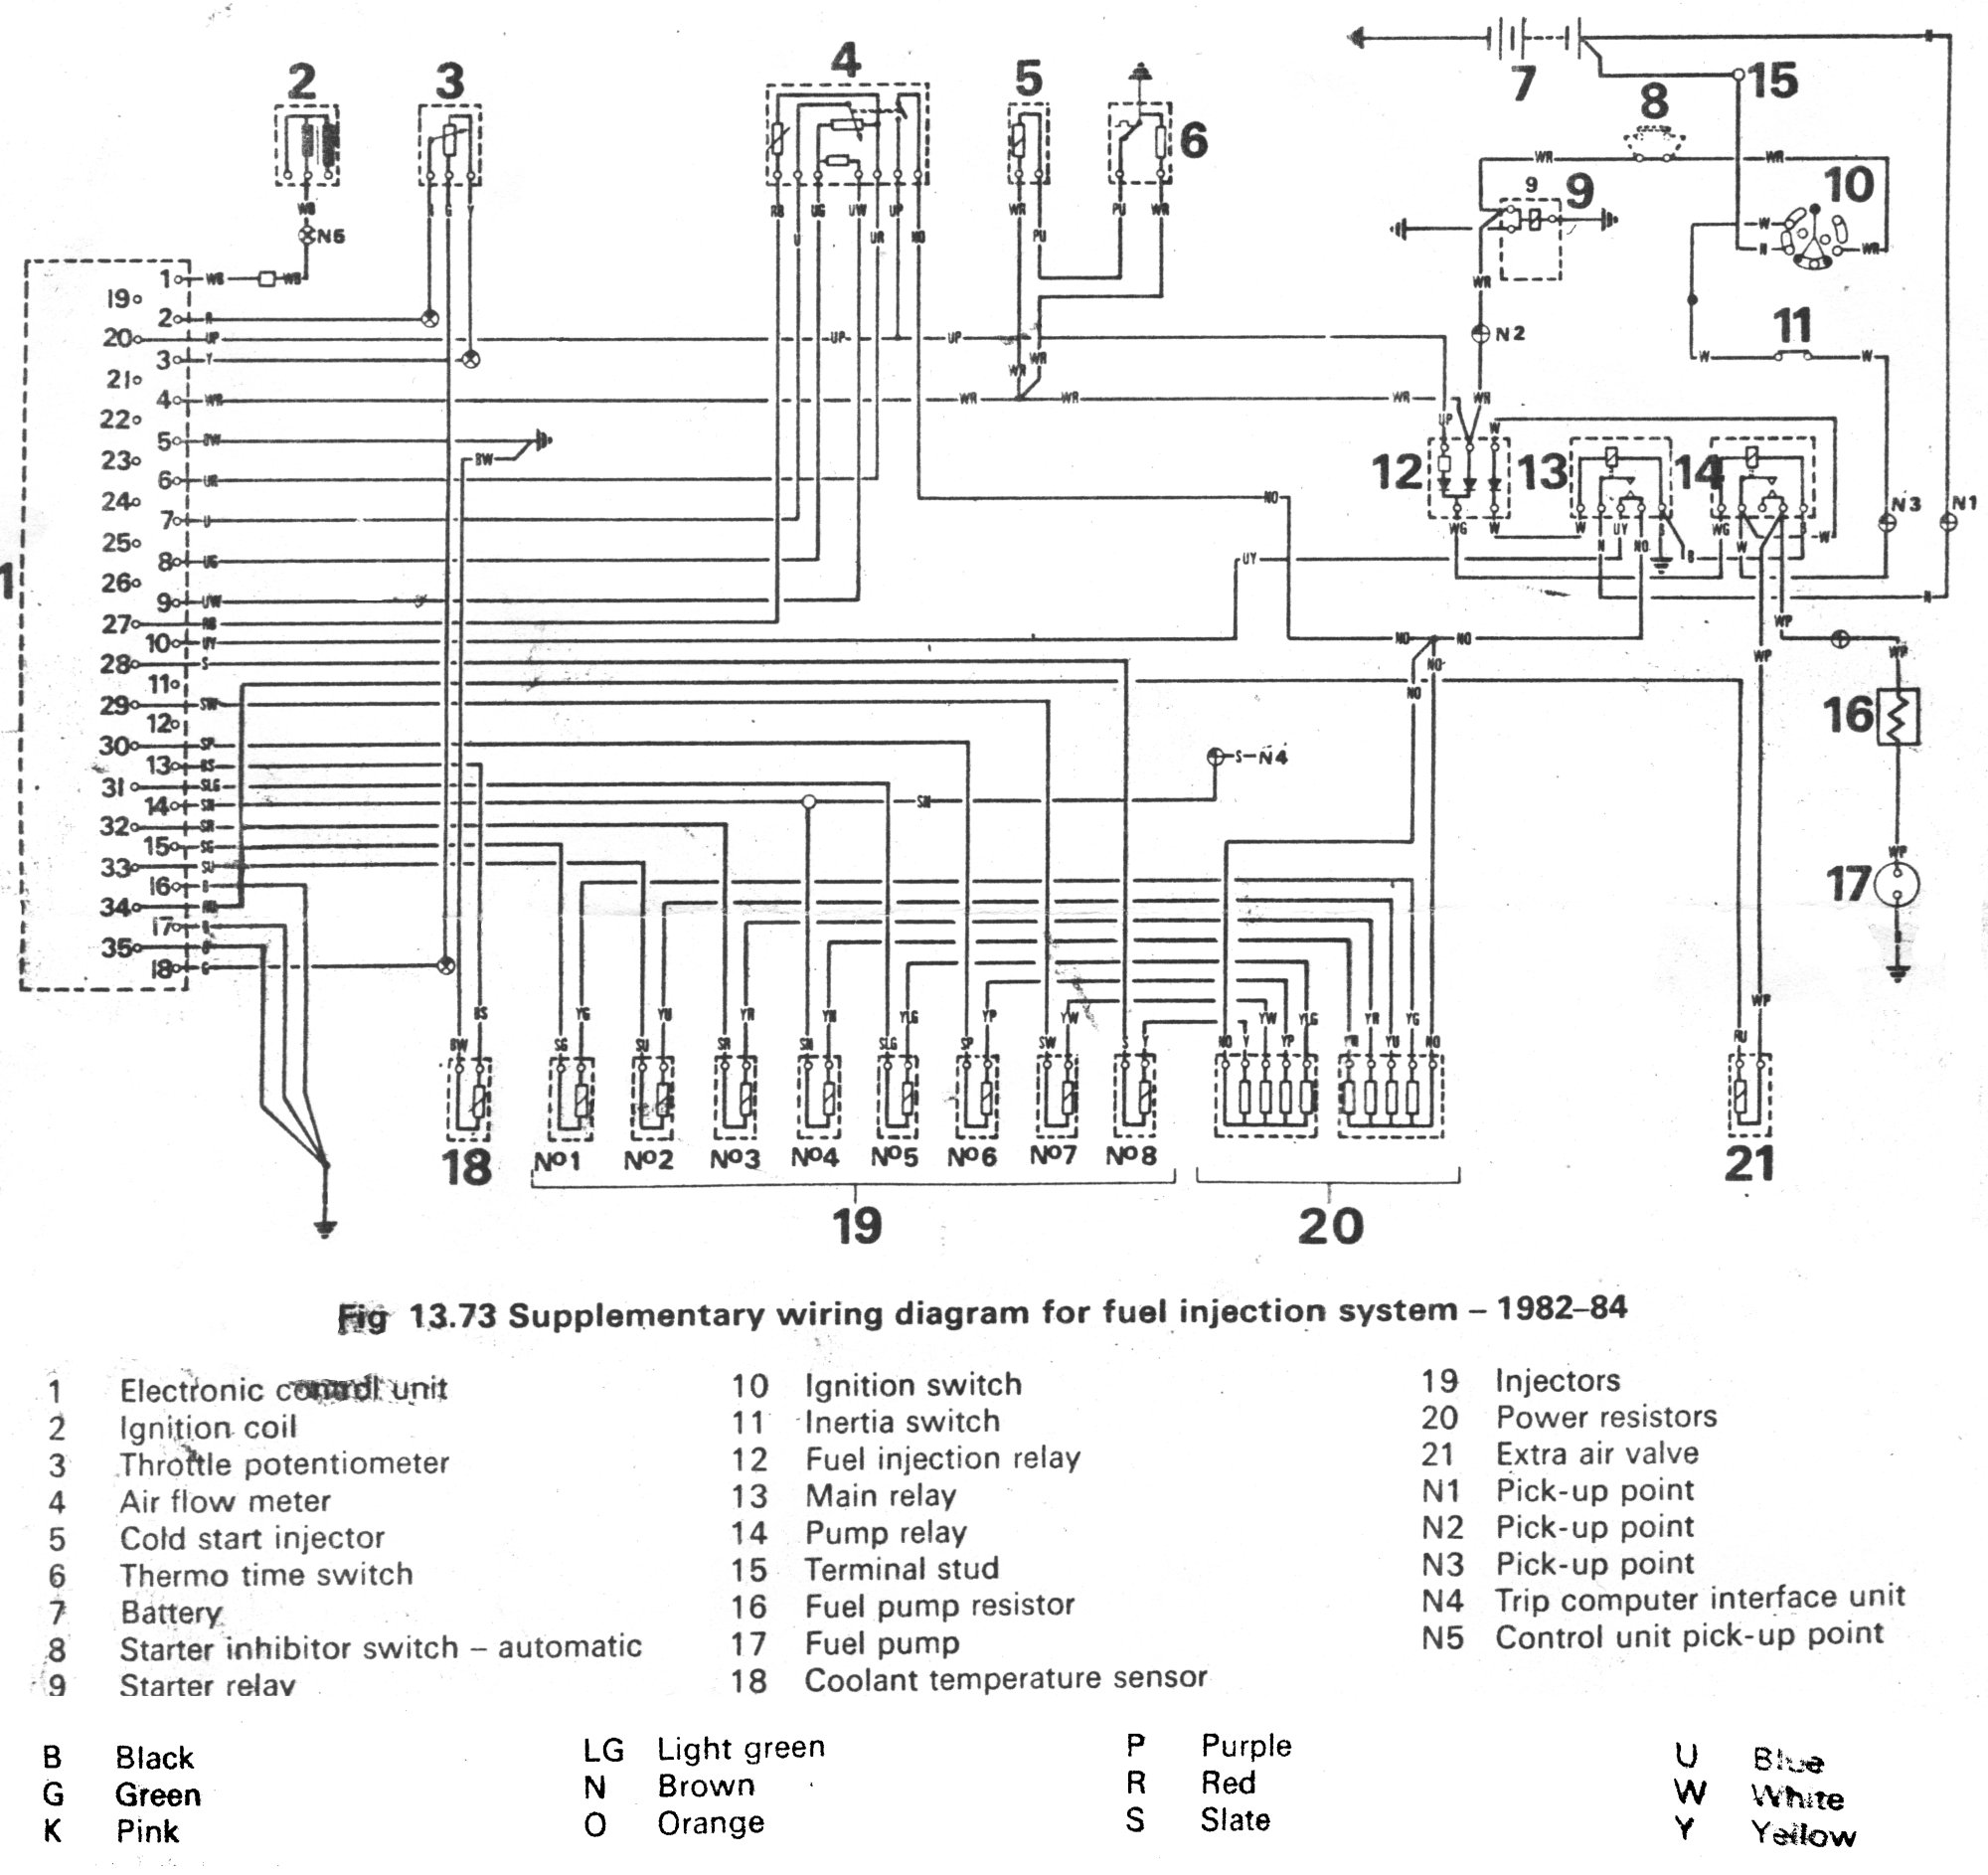 Wiring Diagram Required - International Forum - Lr4x4